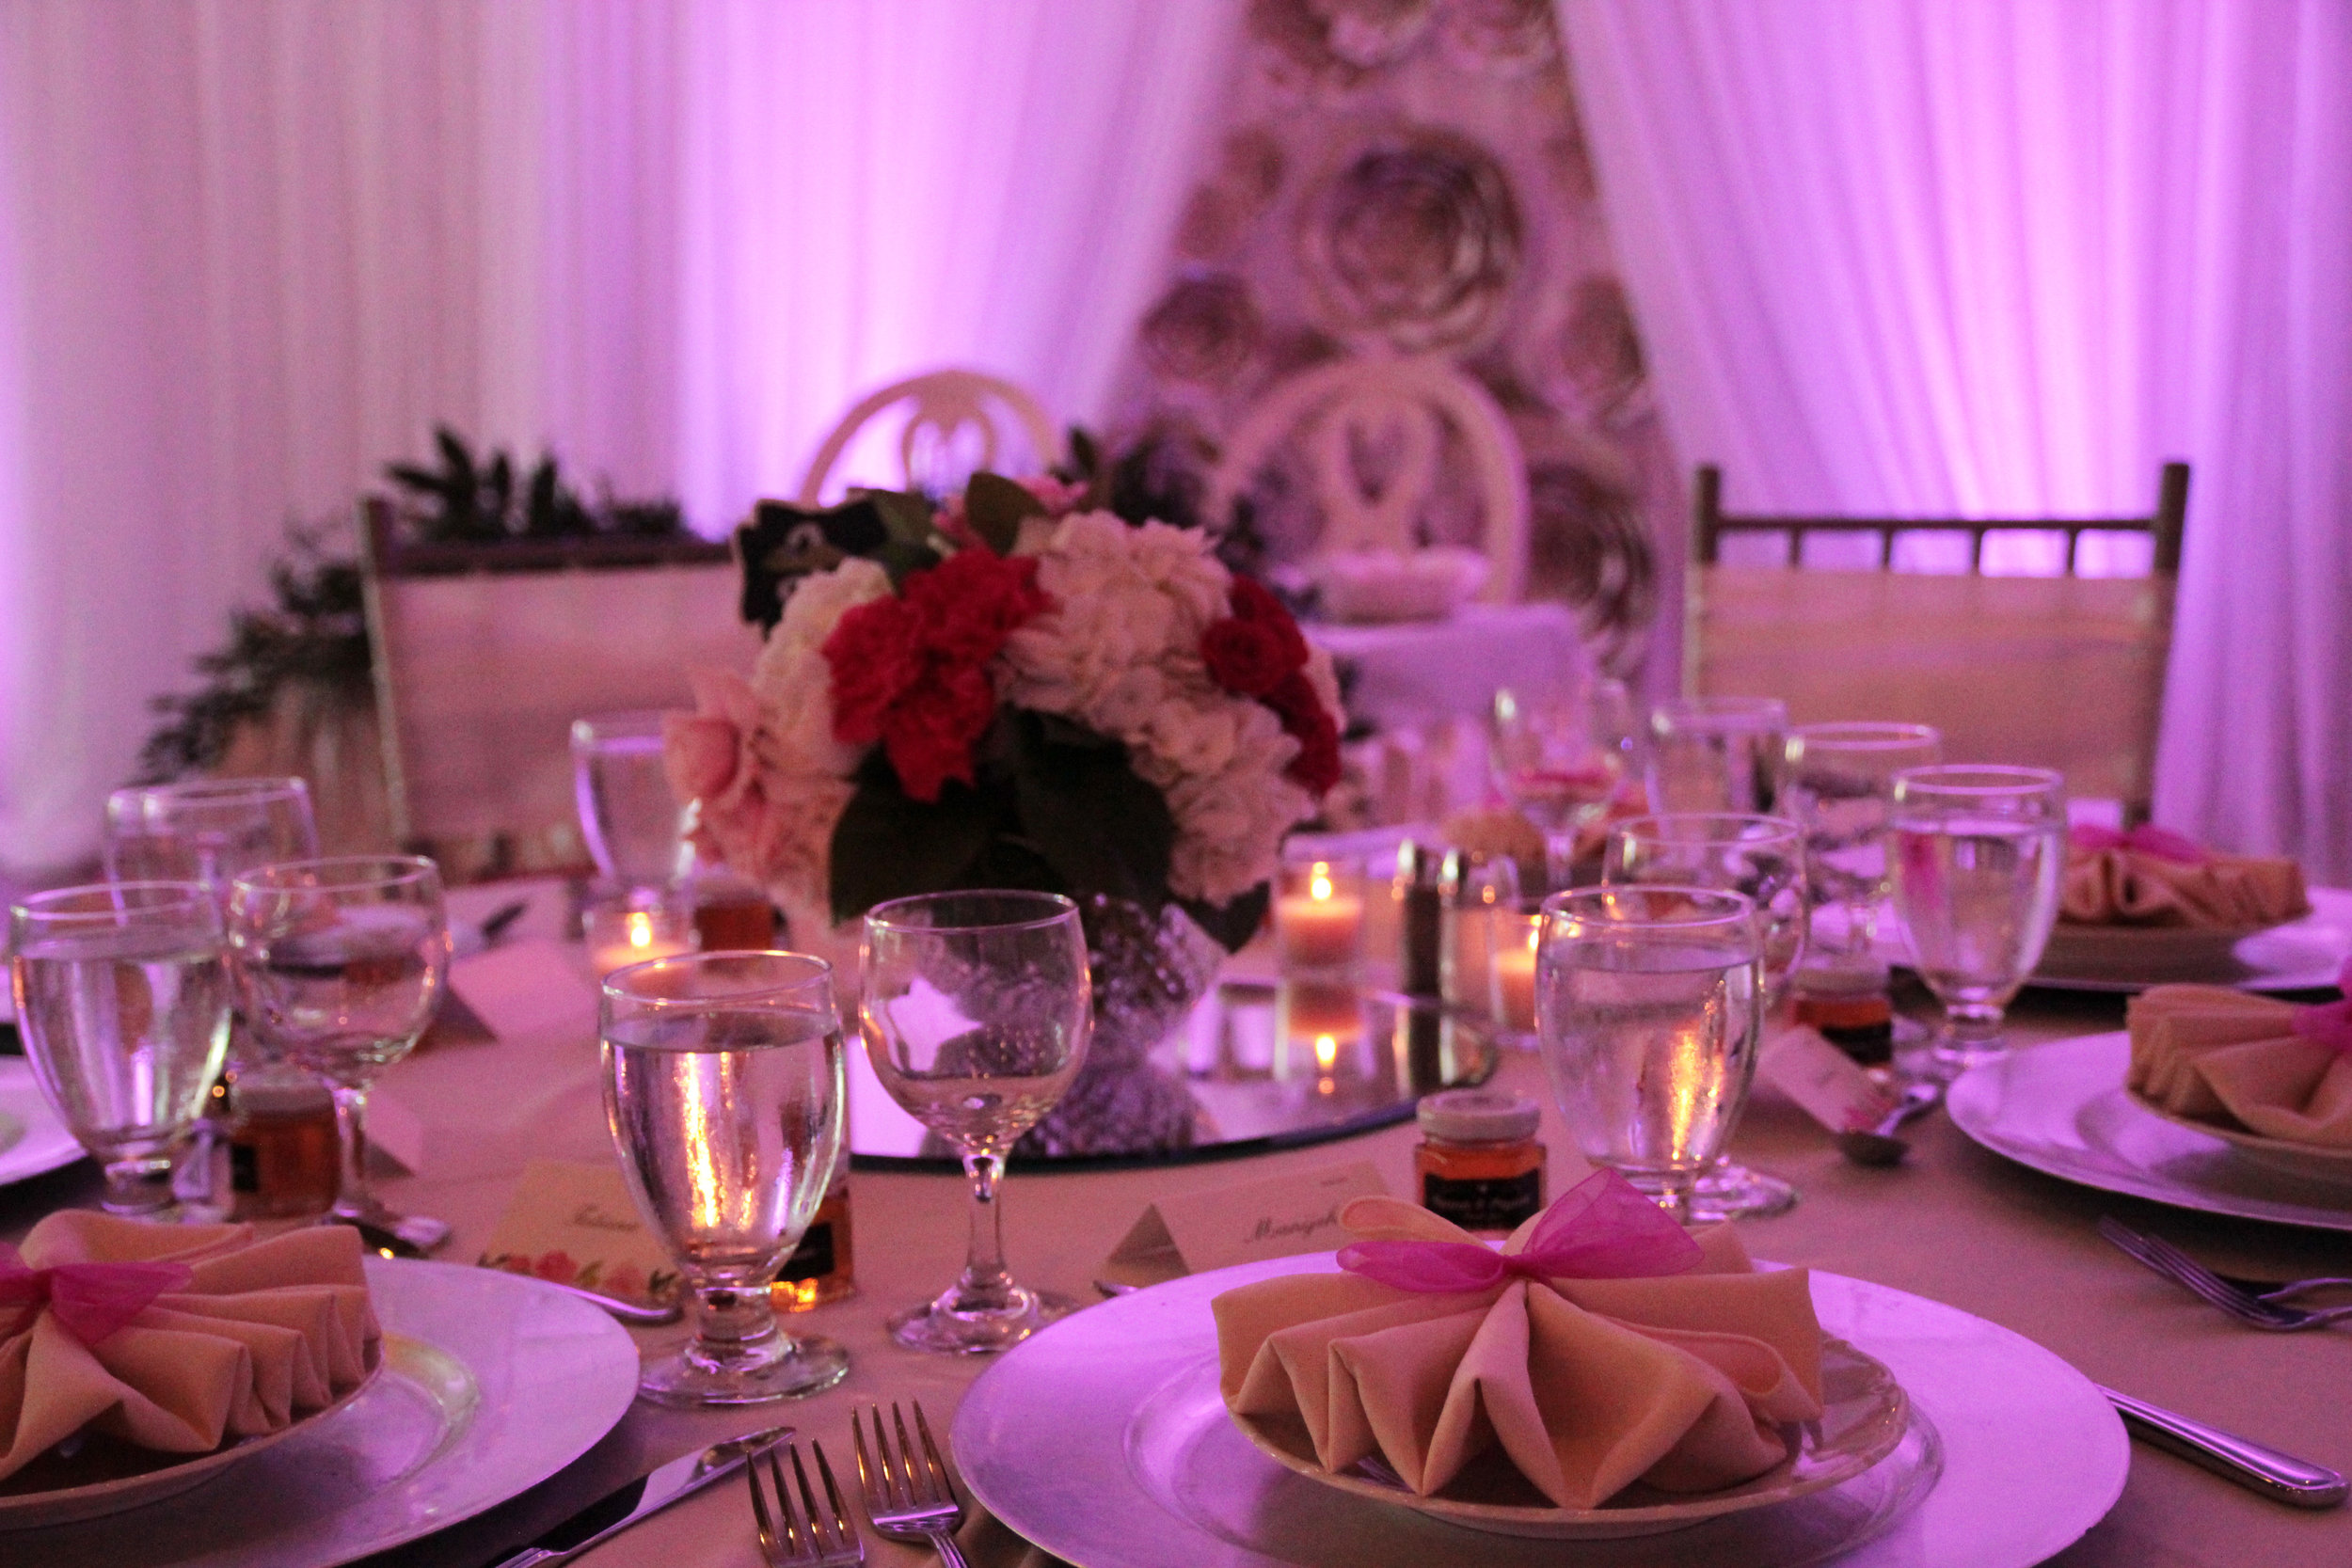 St. Marys Ballroom    wedding dramatically-decorated with layers of fabrics, flowers and lighting in fuchsia. Decor:    Devine Wedding Design   .